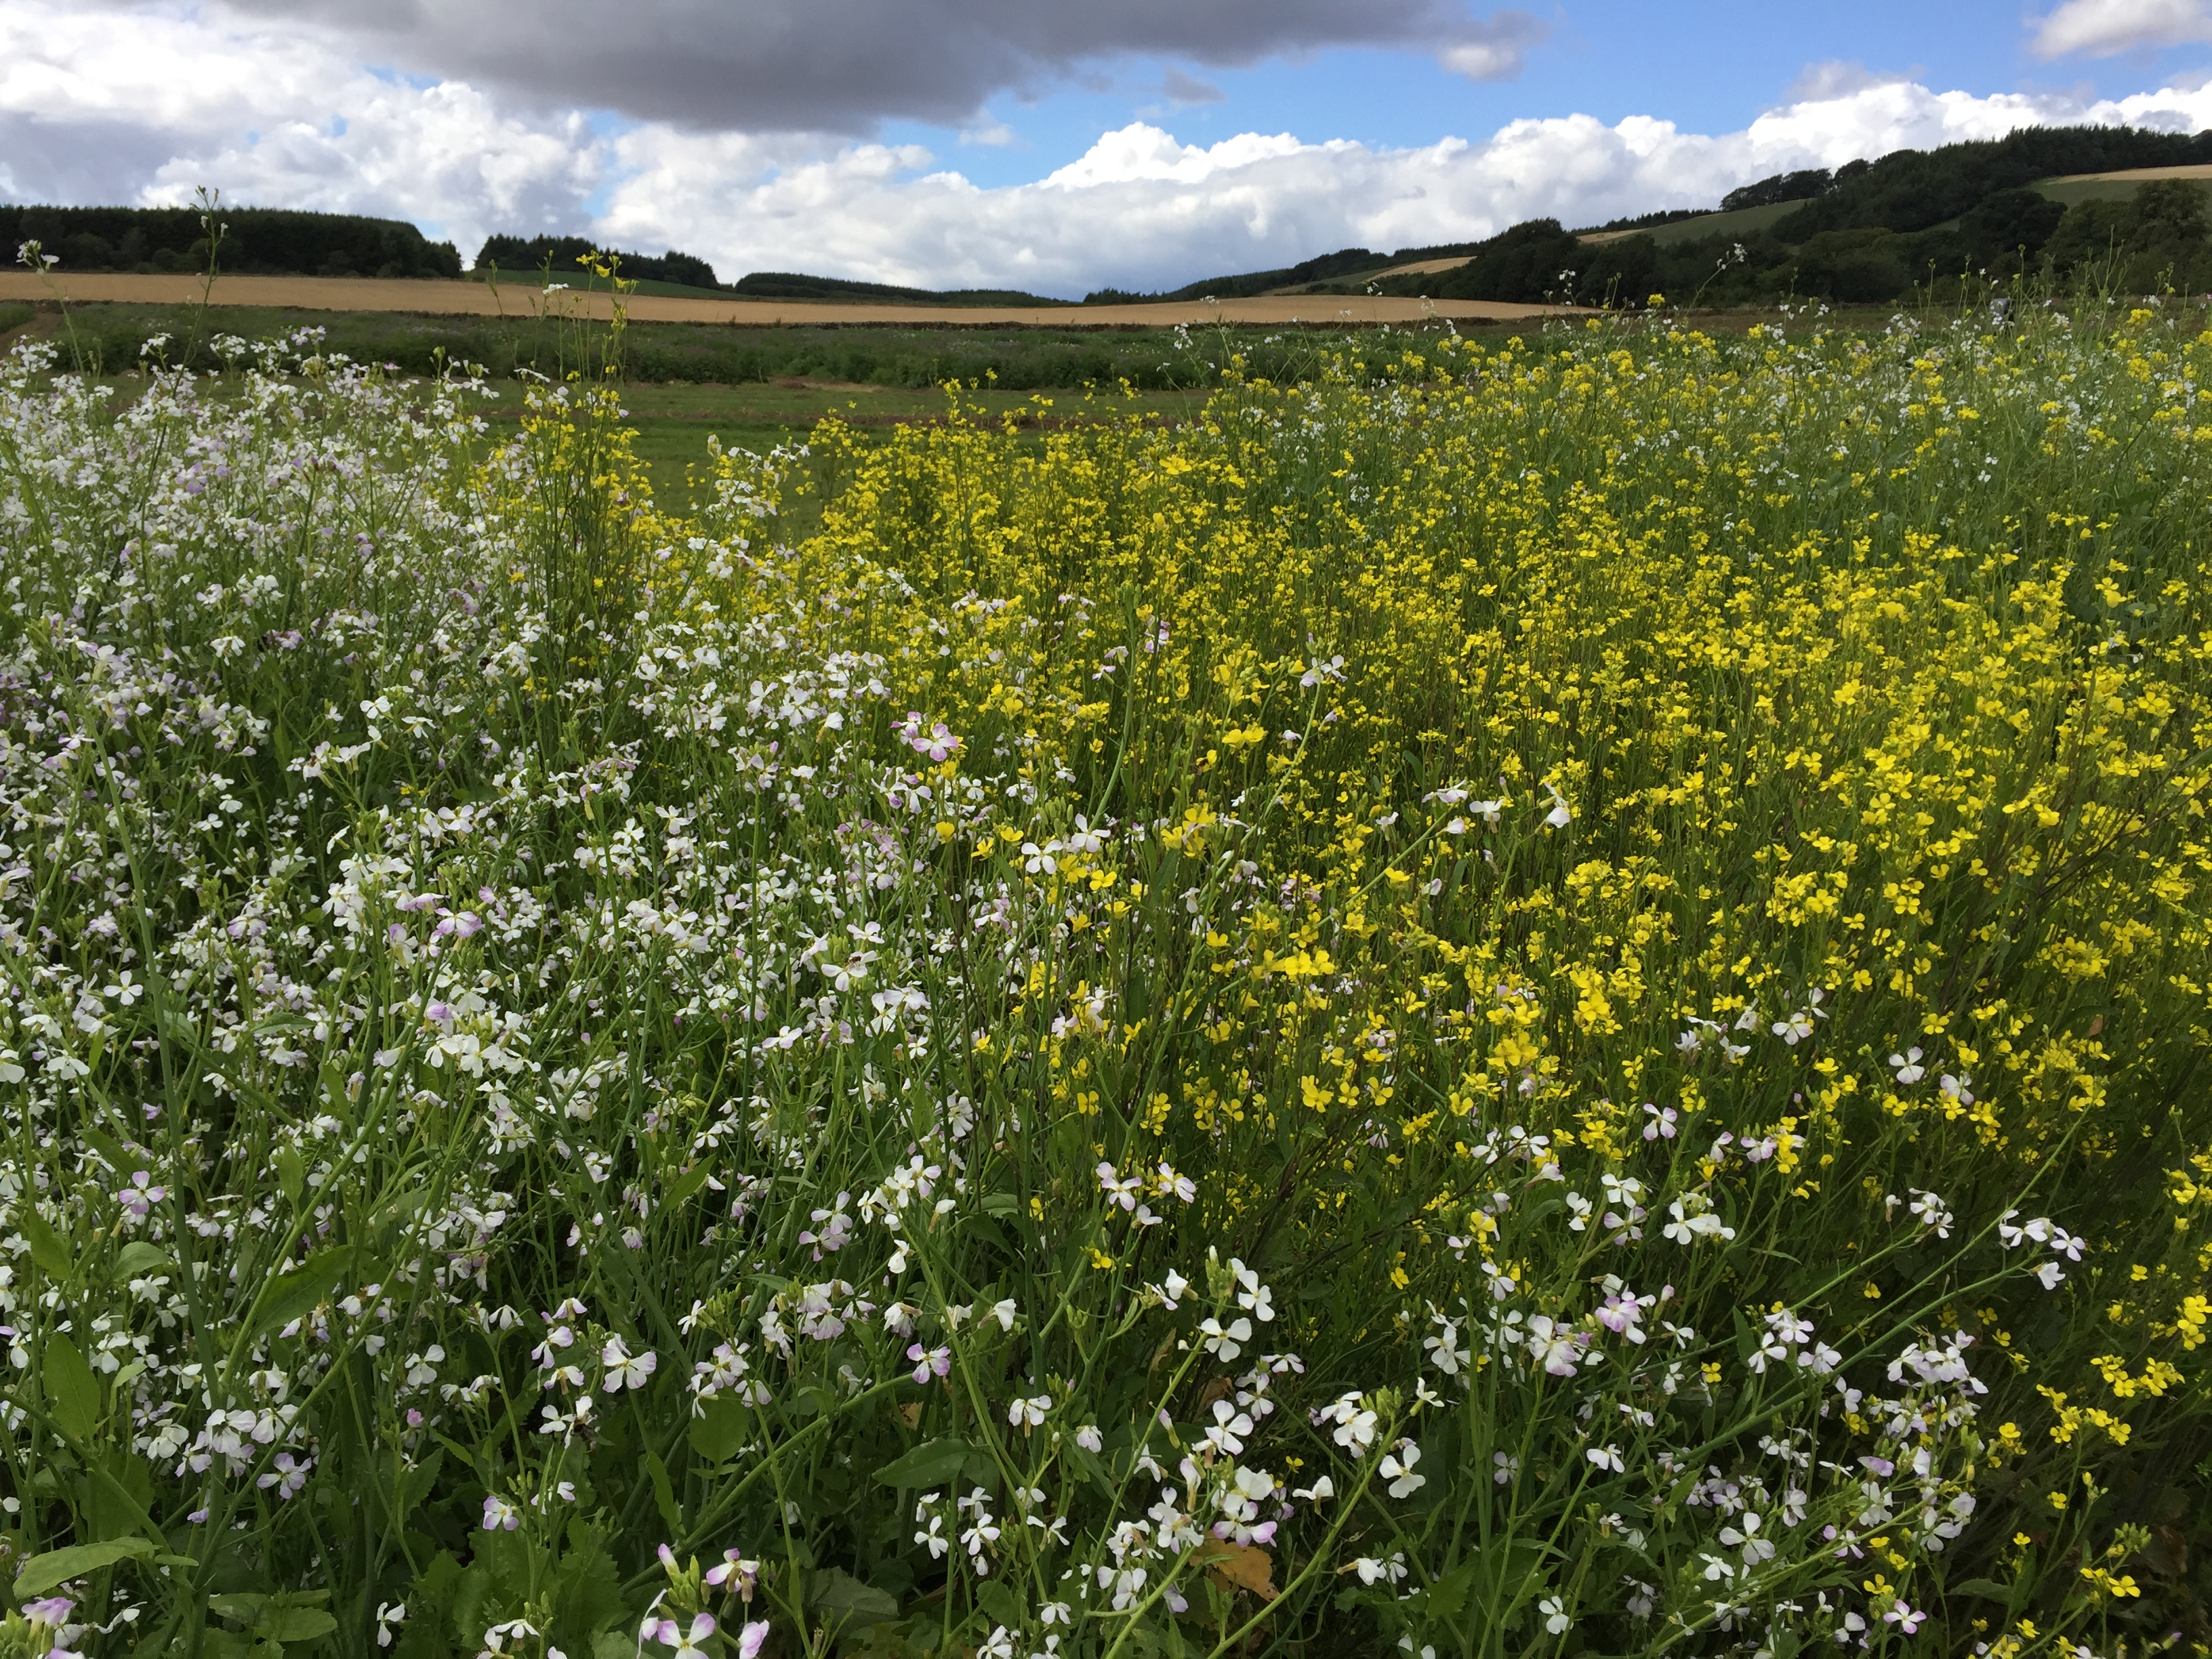 Wild flowers, agricultural crops and woodland trees illustrating a healthy natural balance of plants on Scottish farmland: image by Fay Young